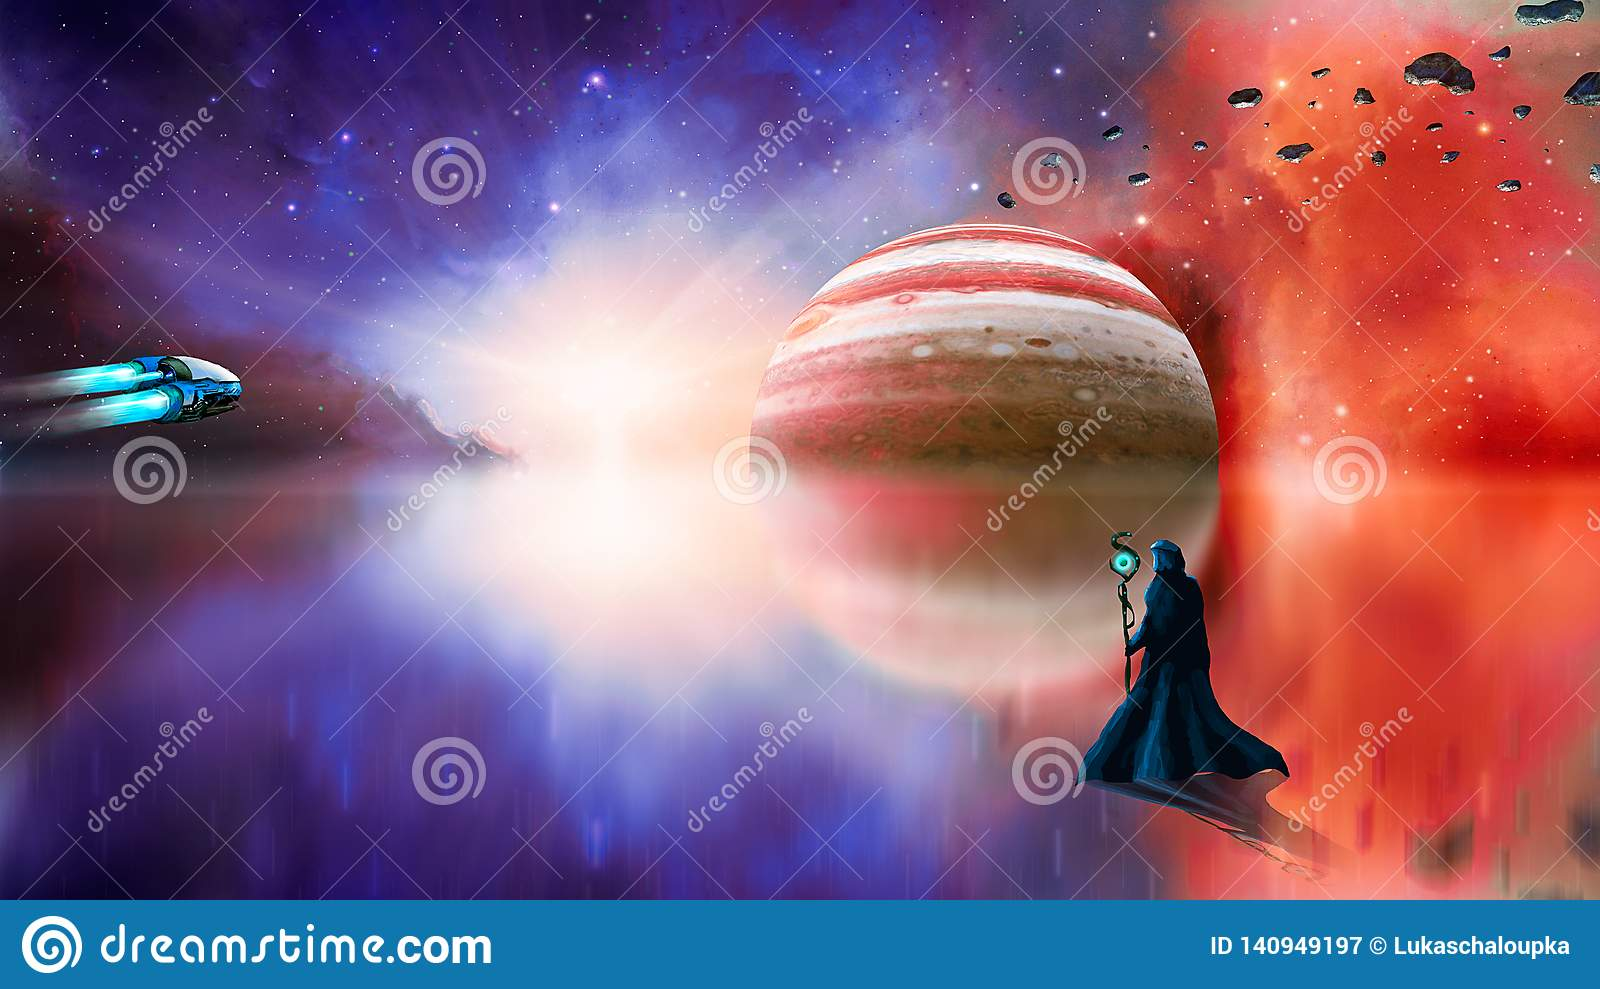 Sci-fi landscape digital painting with nebula, magician, gas gigant, lake and spaceship. Elements furnished by NASA. 3D rendering